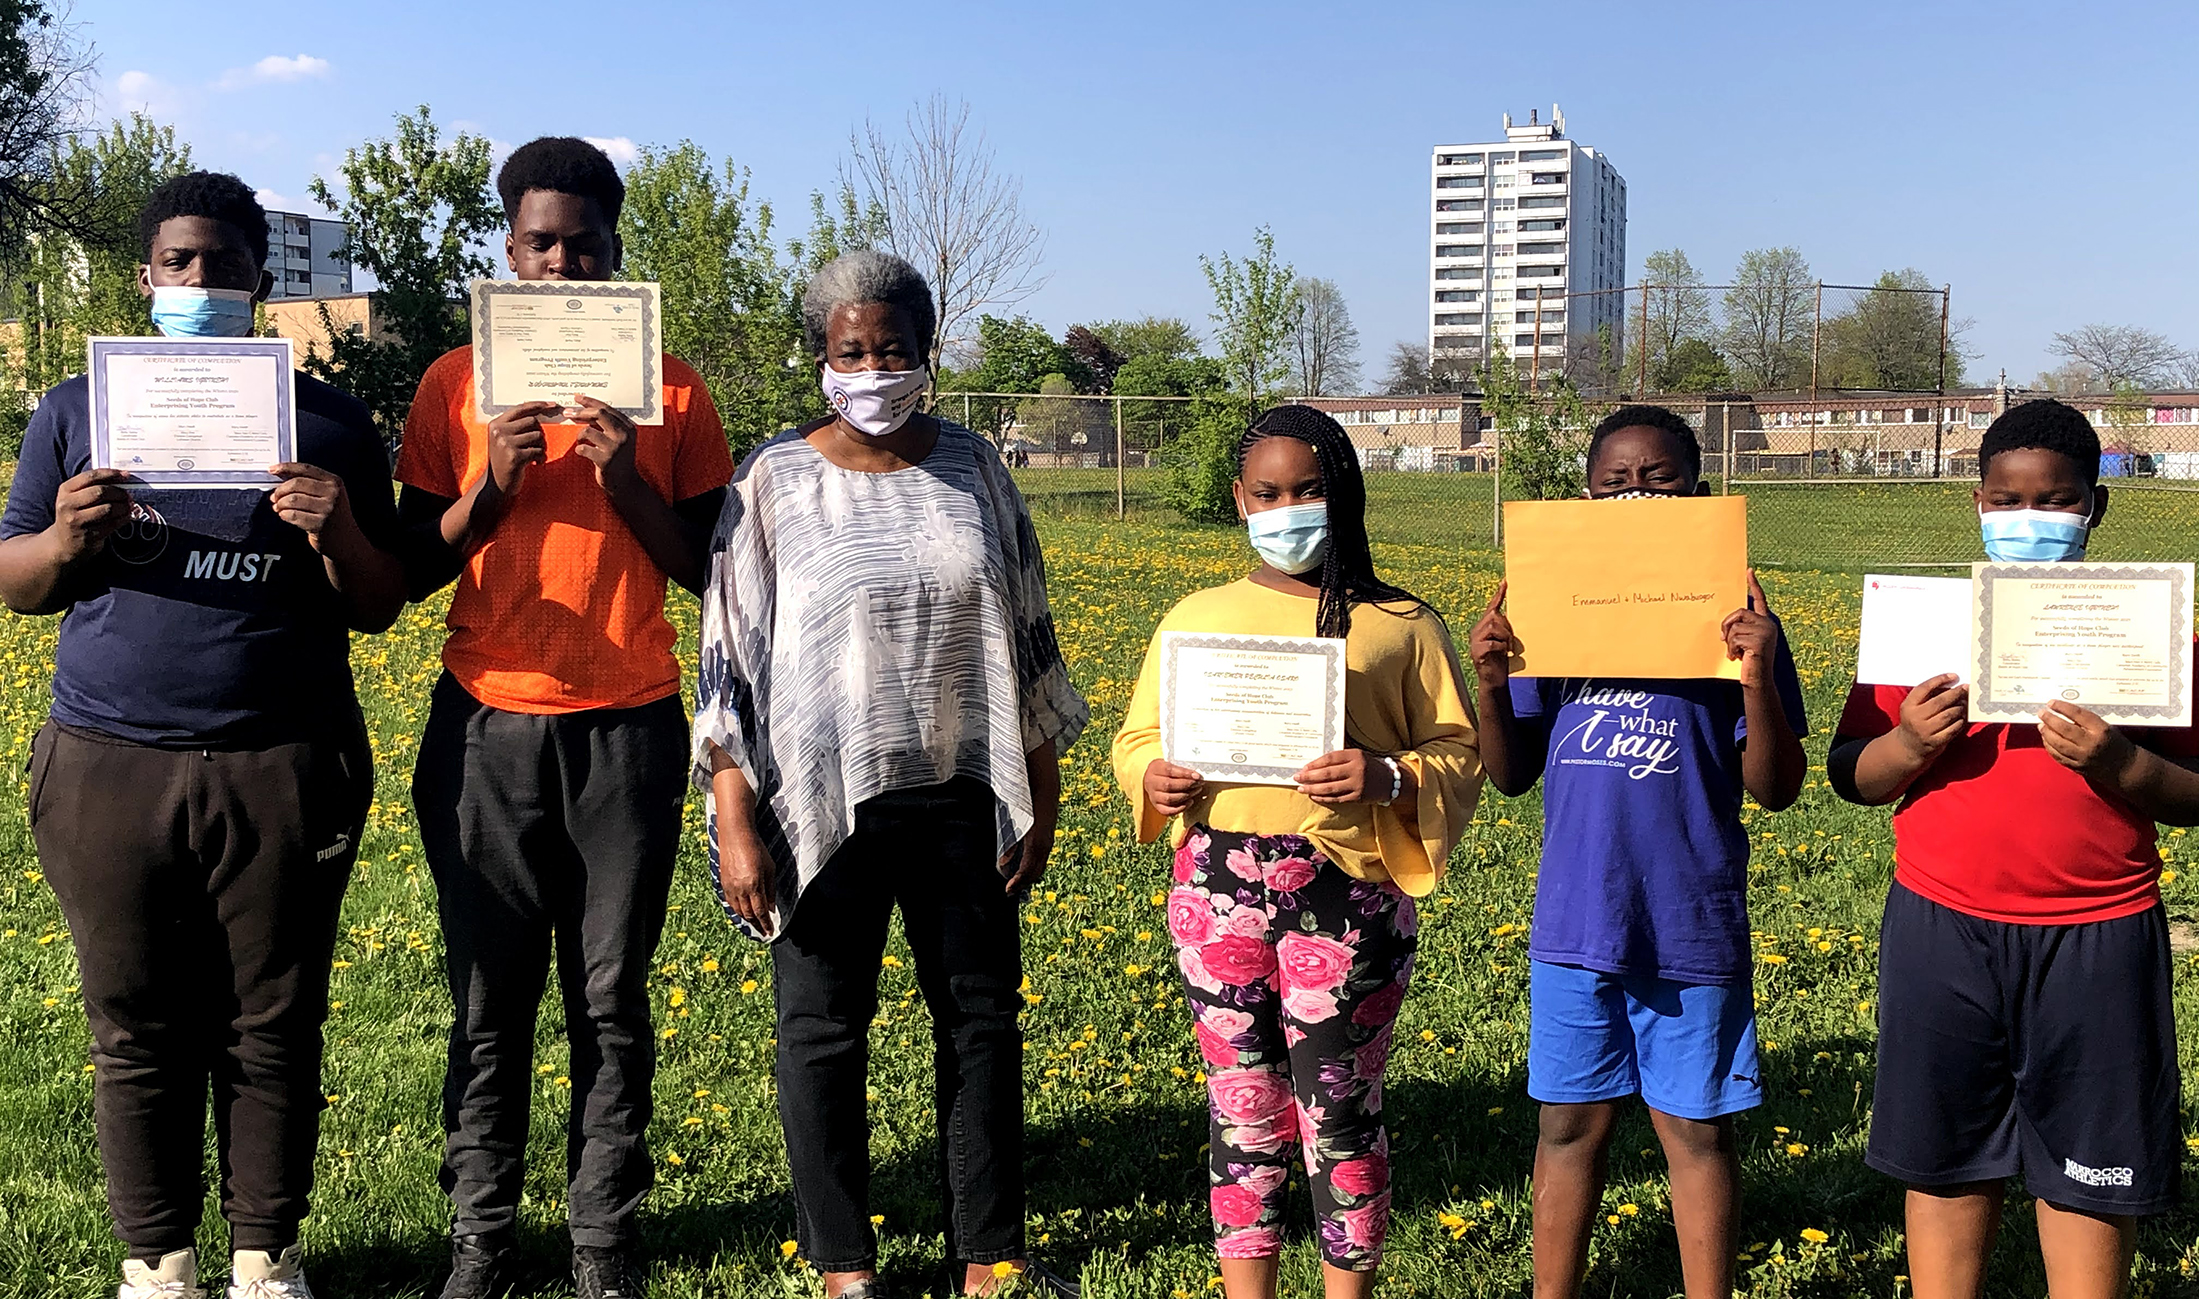 Jane and Finch outreach worker standing alongside 5 youth holding their program certificates